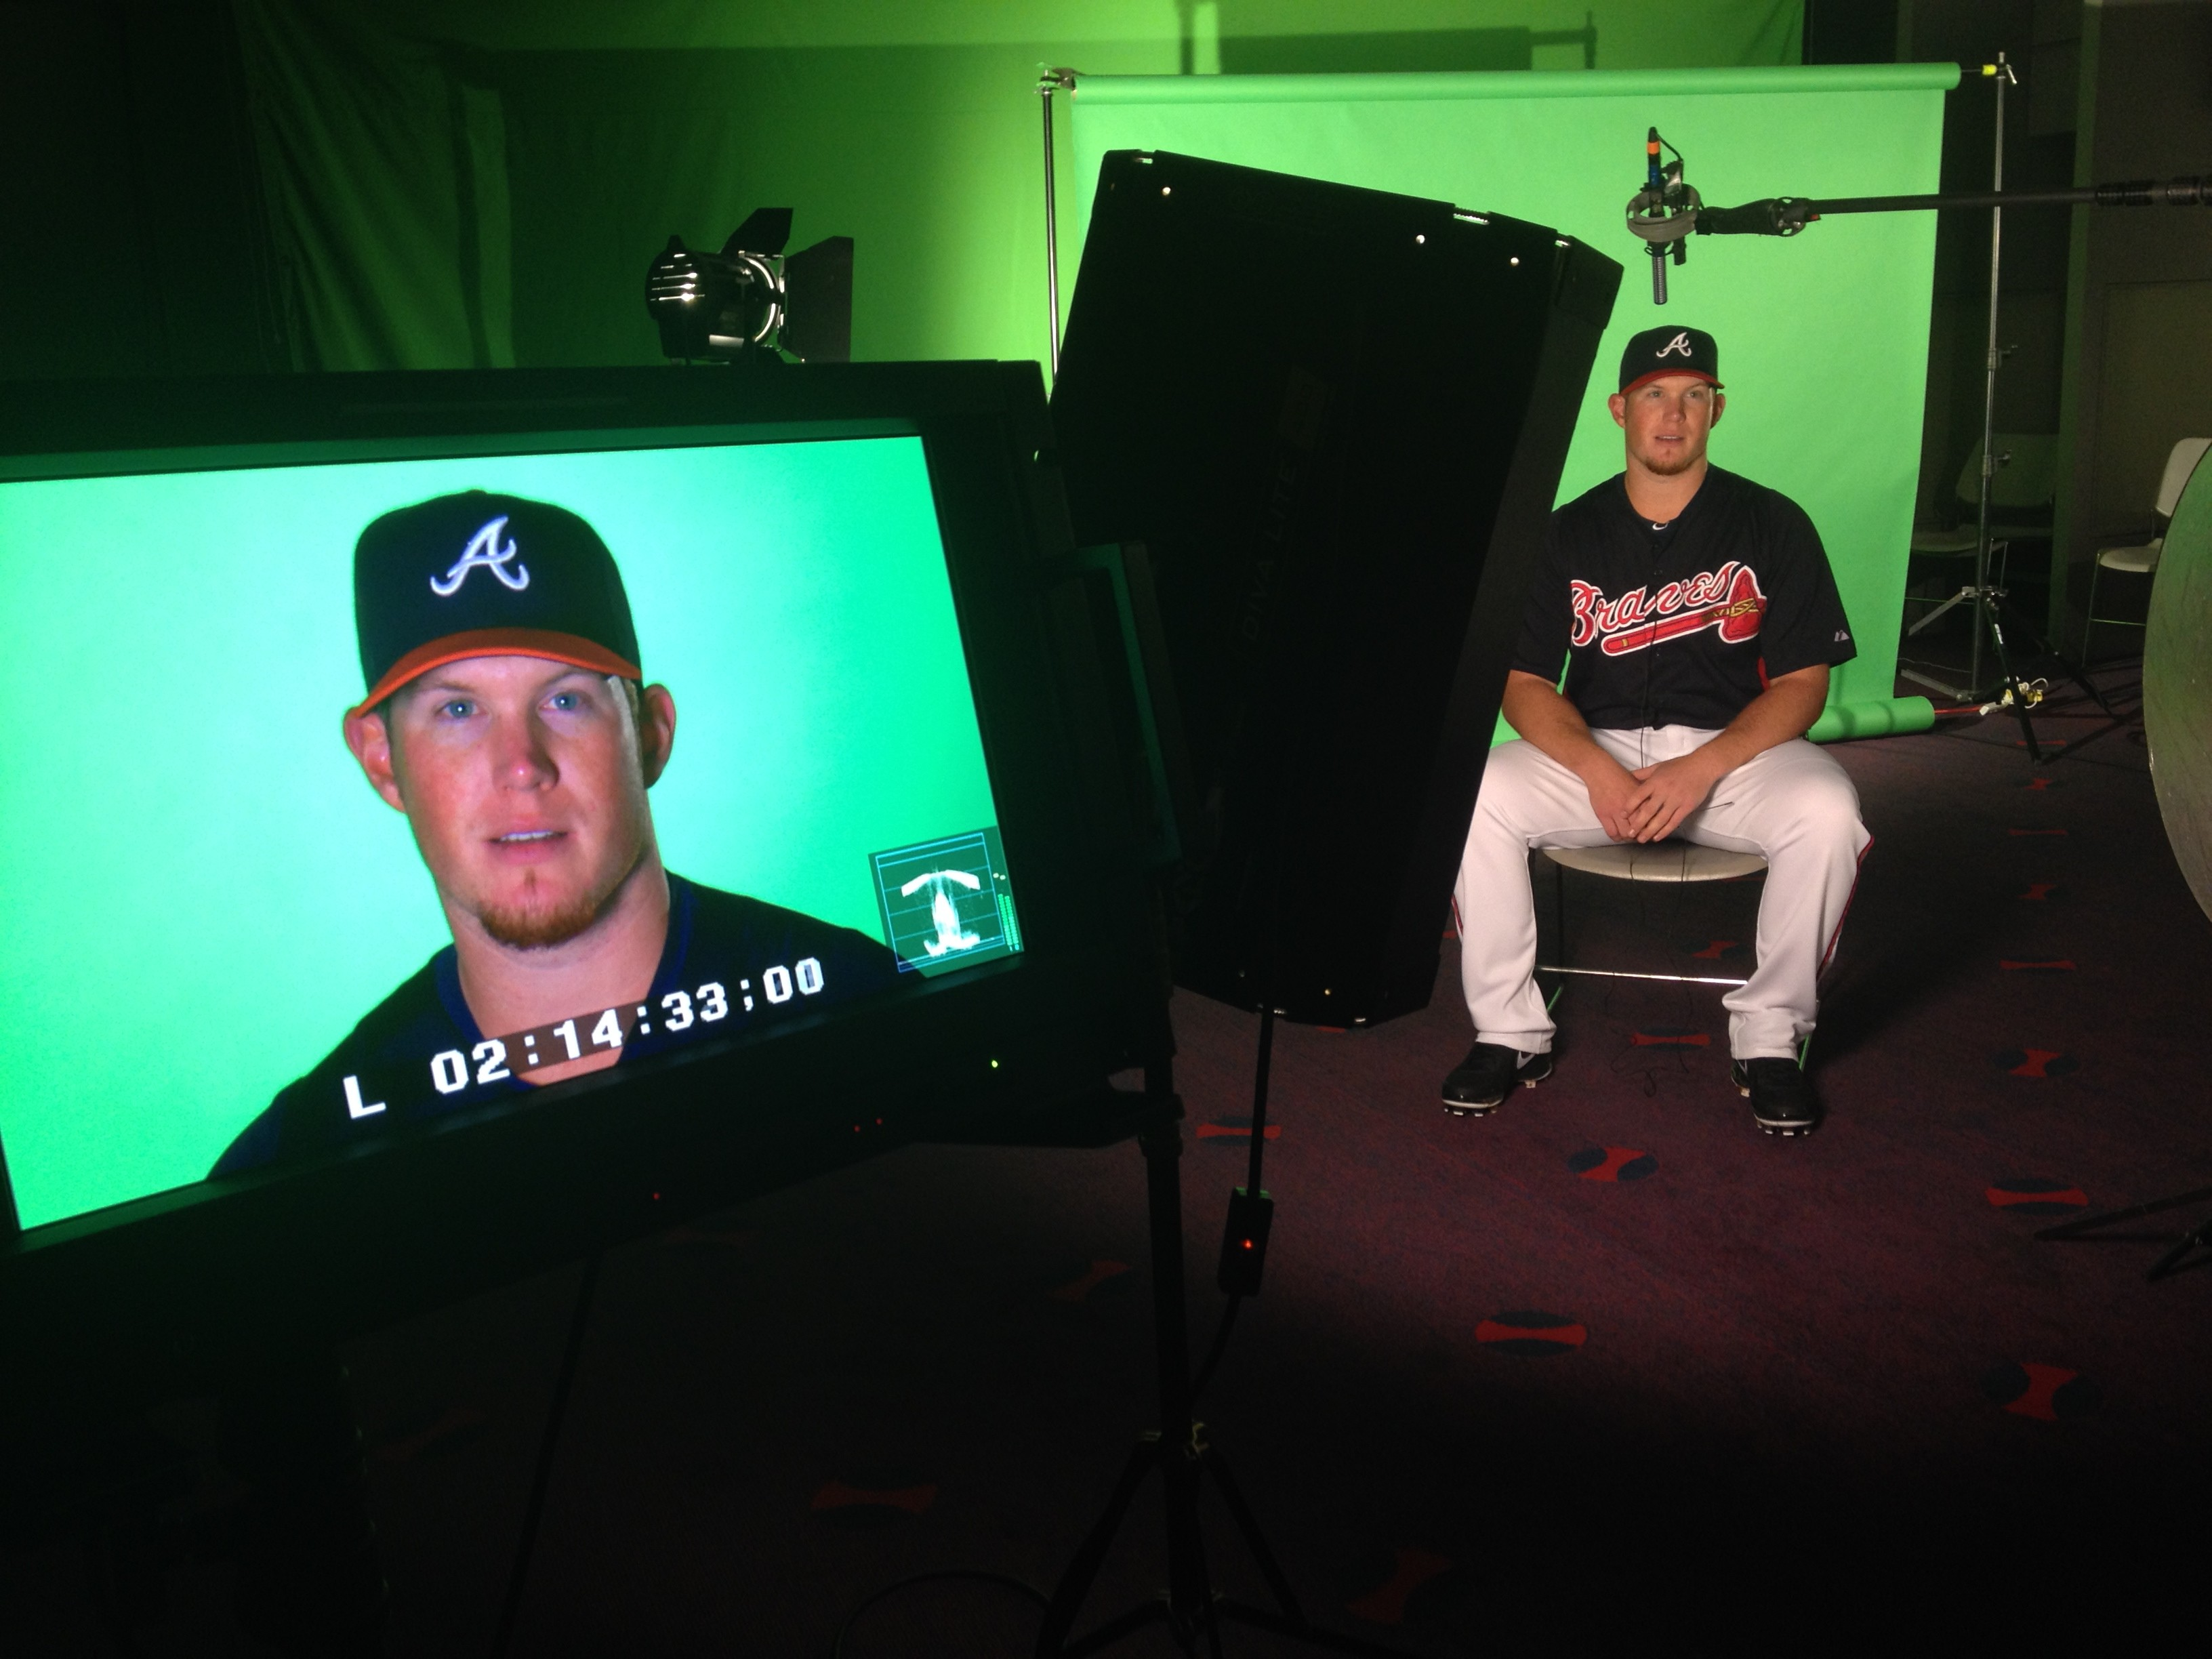 IMG 2103 e1380650954858 Atlanta Crew Shoots MLB for Postseason